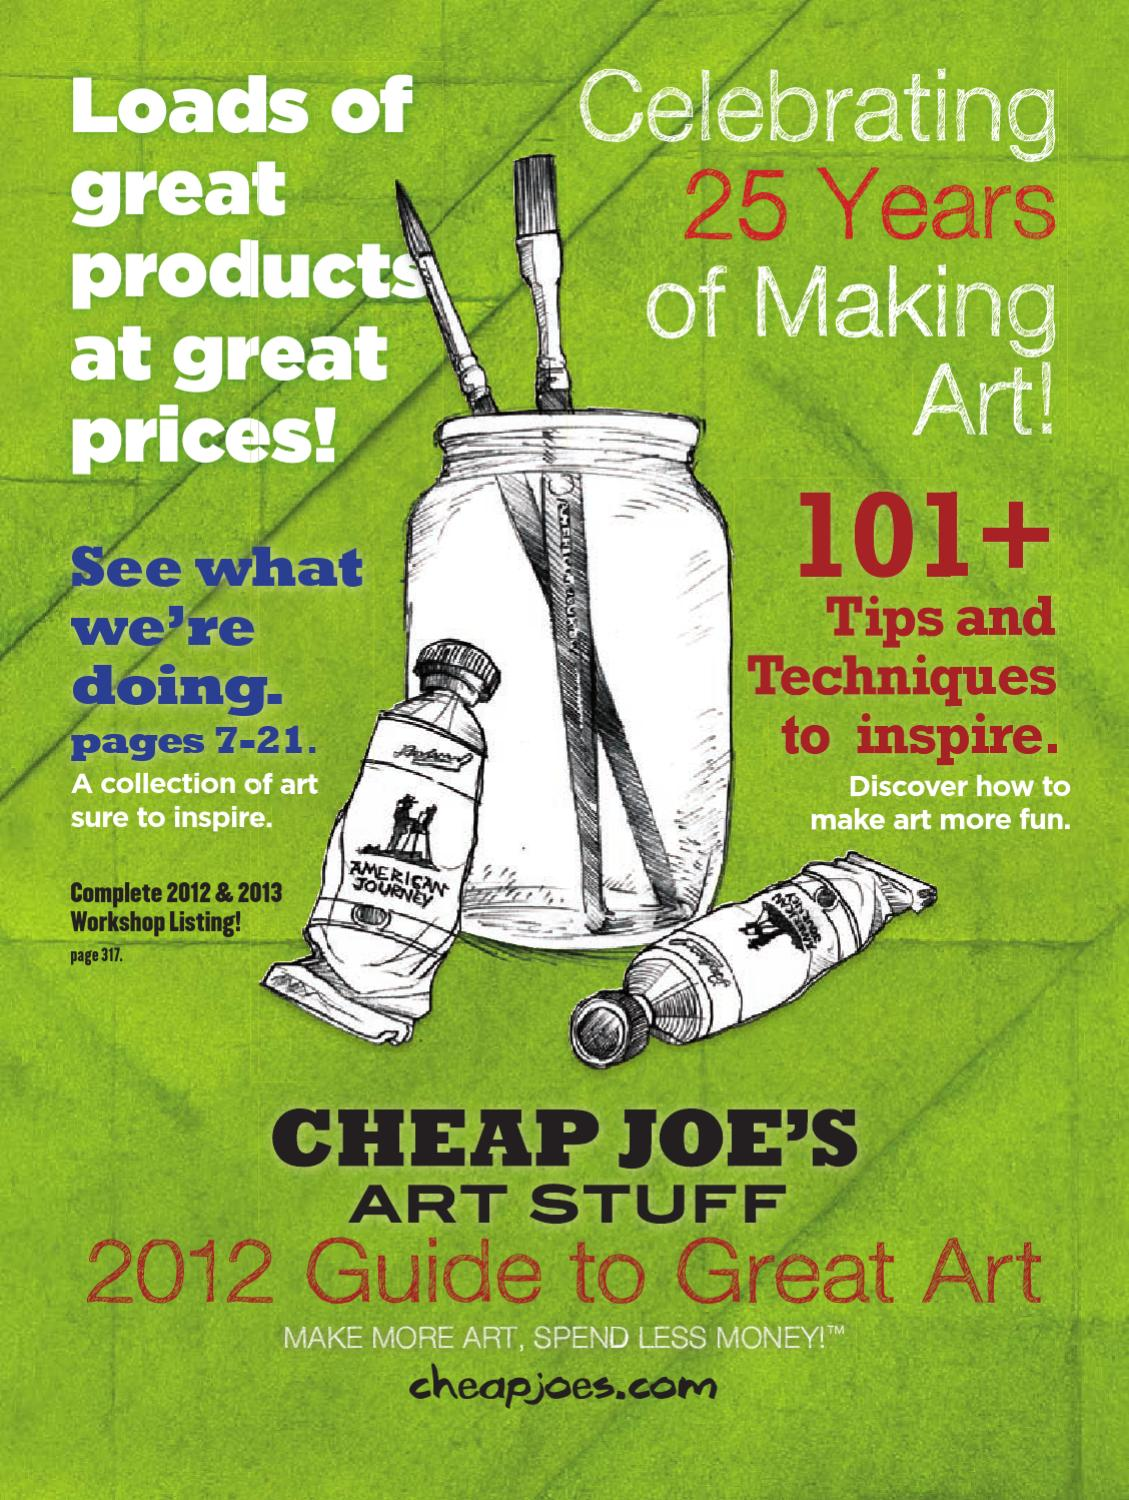 cheap joe 39 s art stuff 2012 guide to great art product reference catalog by cheap joe 39 s art. Black Bedroom Furniture Sets. Home Design Ideas